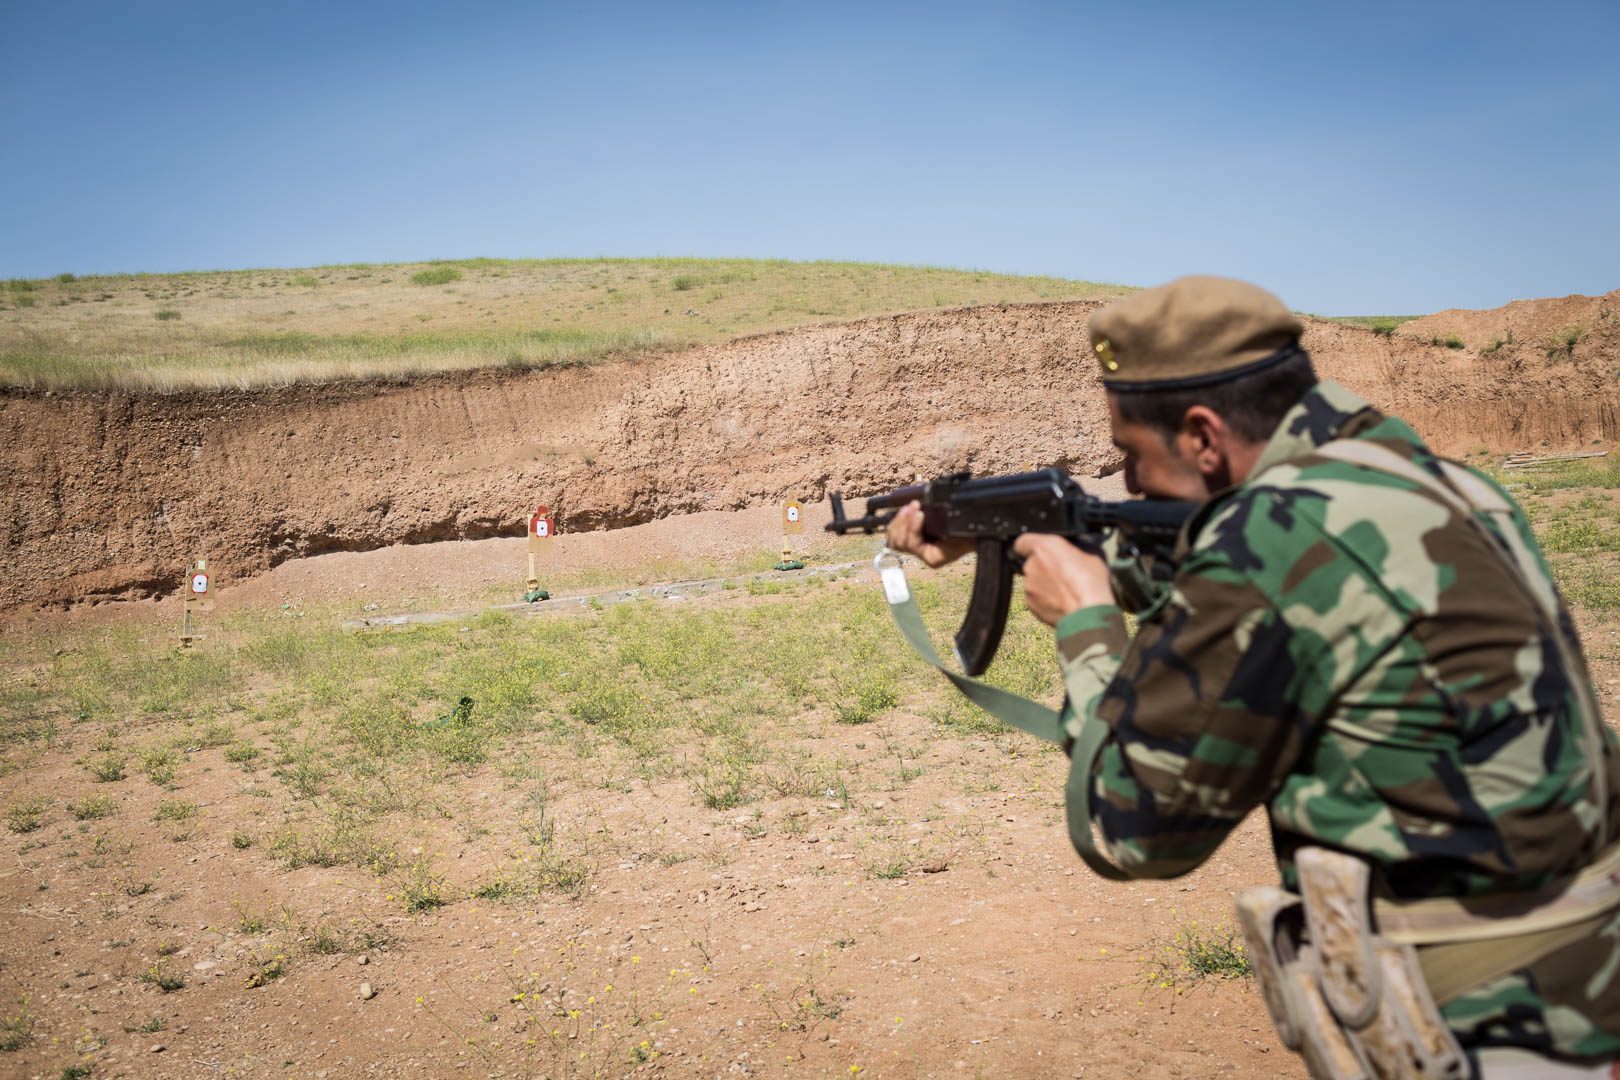 A Peshmerga soldier takes aim at the shooting range. Most of the Peshmerga trained by German and coalition forces are affiliated with the Barzani-led Kurdish Democratic Party, the ruling Kurdish party in the northern part of Kurdistan in Iraq.